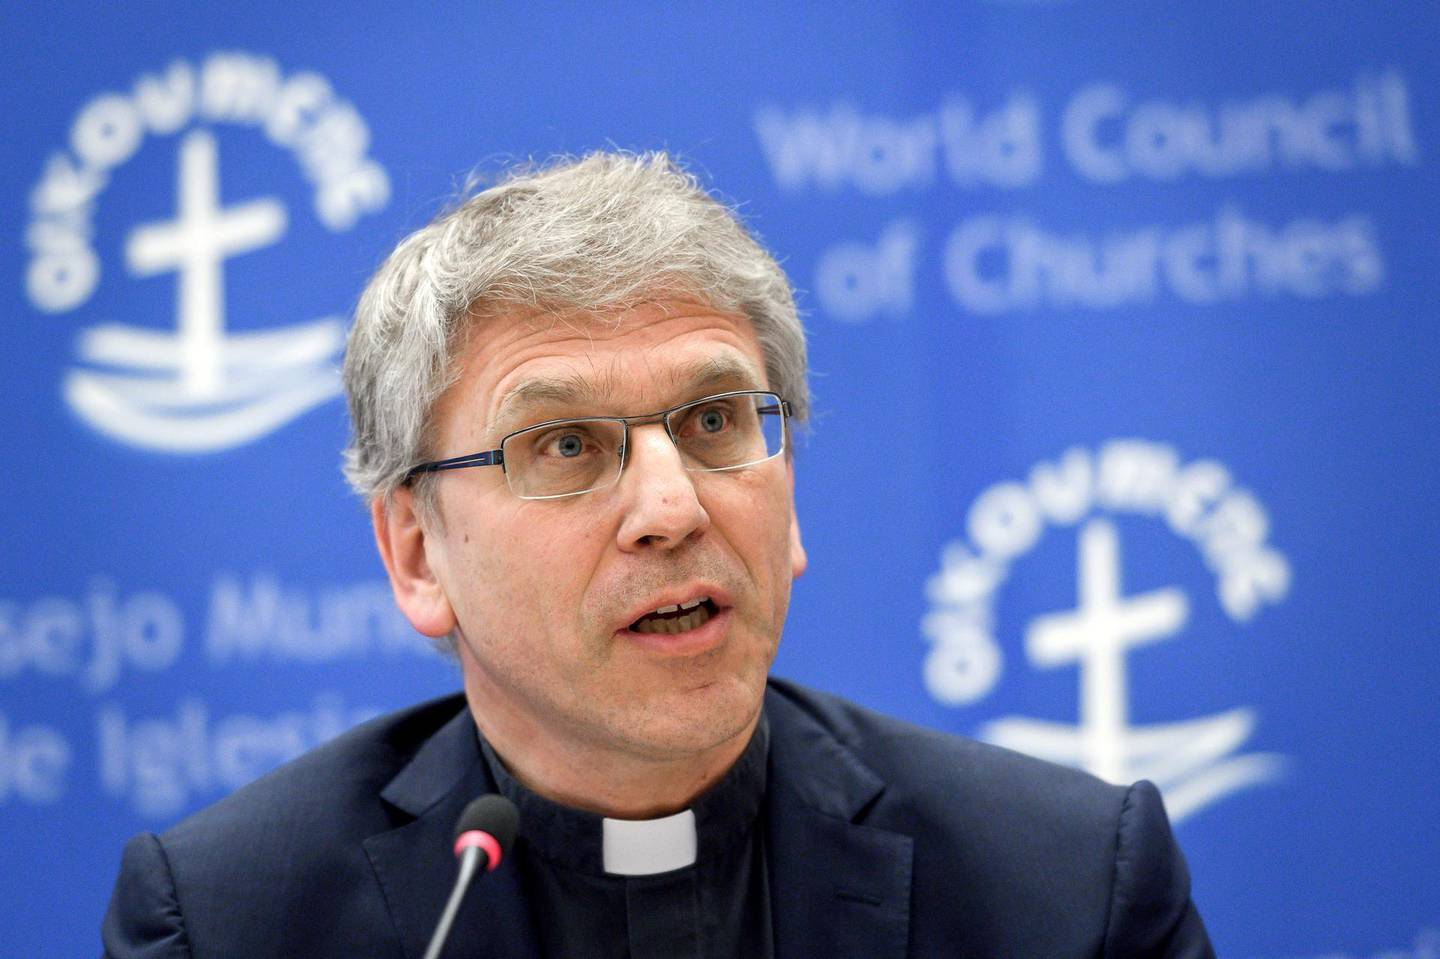 General secretary of the World Council of Churches (WCC), Olav Fykse Tveit, attends a press conference on May 15, 2018 at the WCC heaquarters in Geneva. - Pope Francis will visit the World Council of Churches for an ecumenical pilgrimage on June 21, 2018 in Geneva. (Photo by Fabrice COFFRINI / AFP)